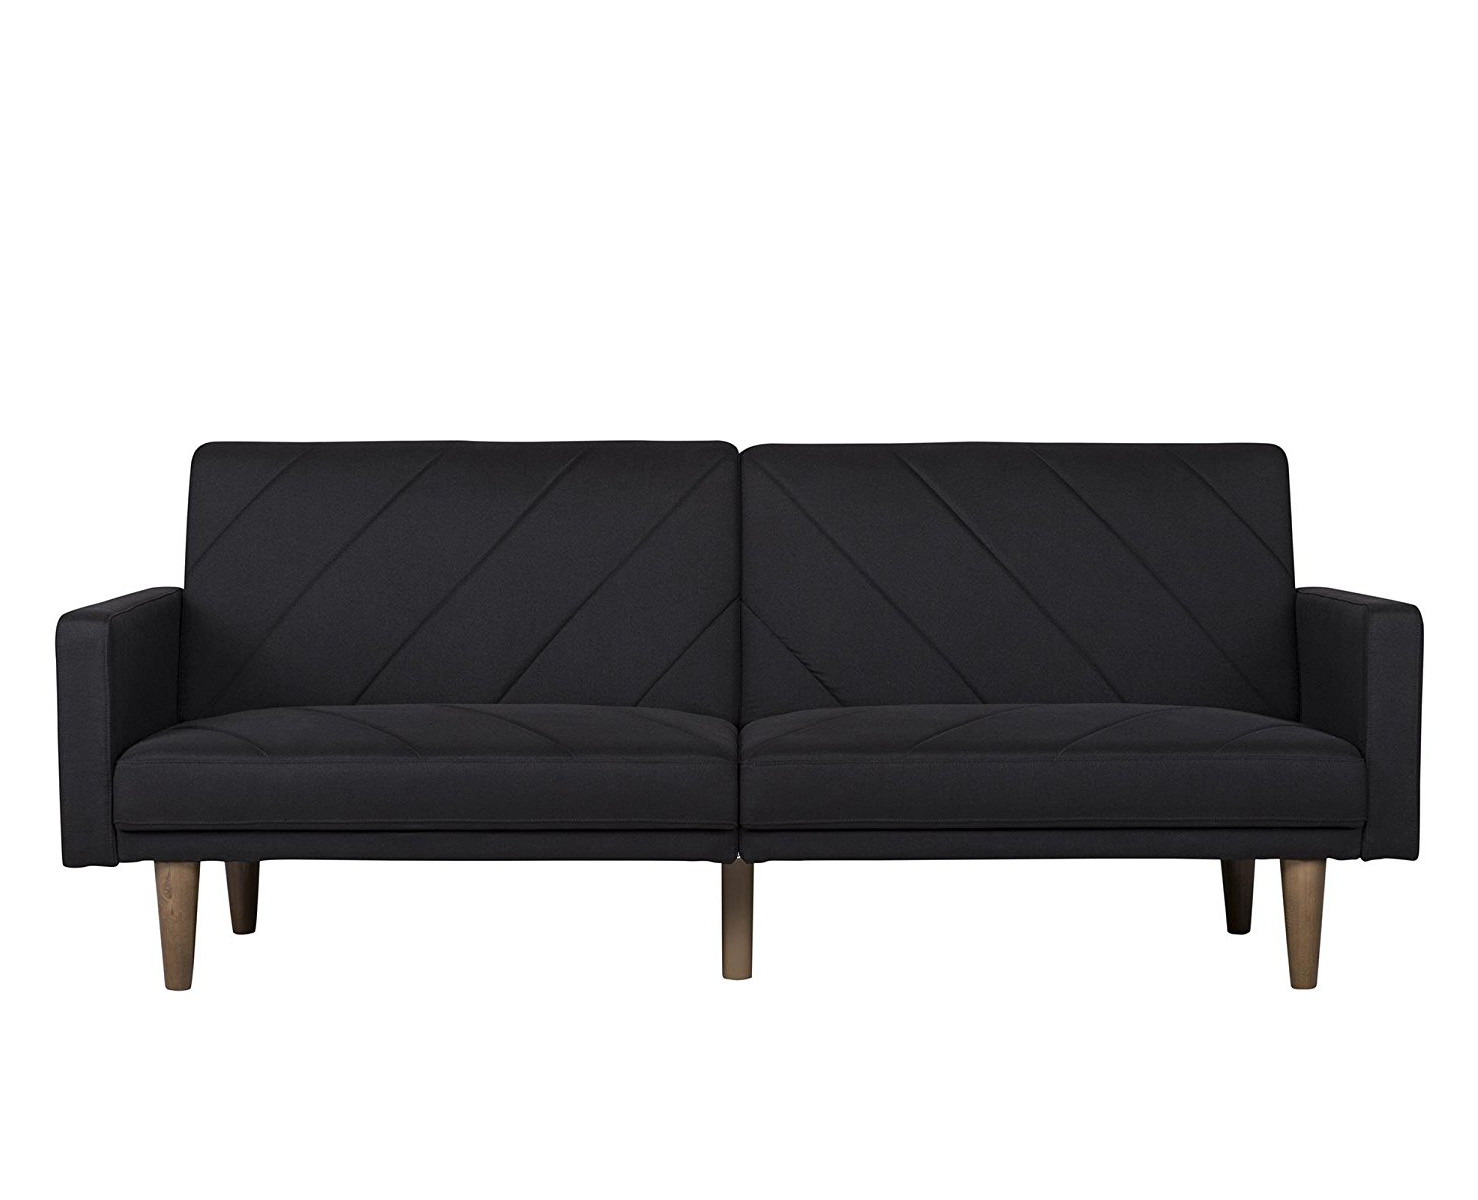 Linen Futon Couch With Retro Wood Legs